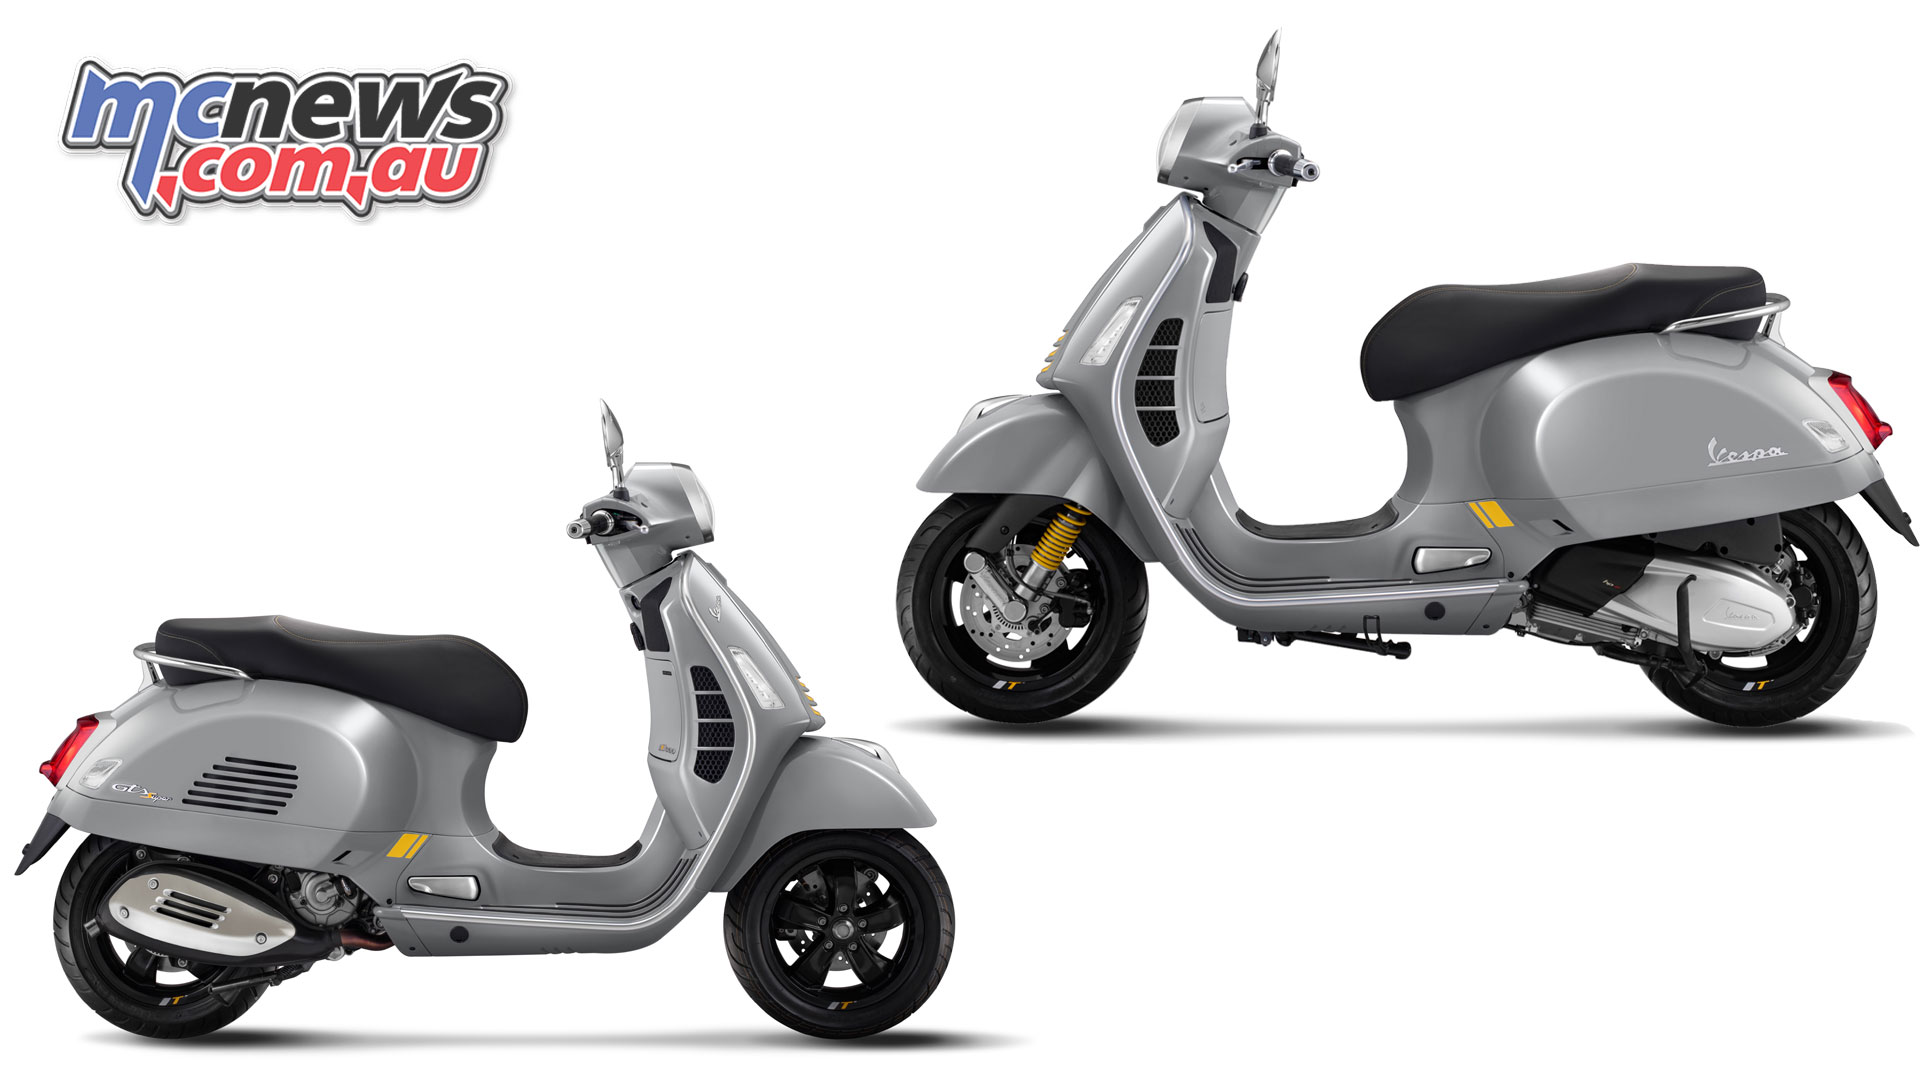 Vespa Gts Super Tech 300 Hpe Most Powerful Vespa Ever Motorcycle News Sport And Reviews